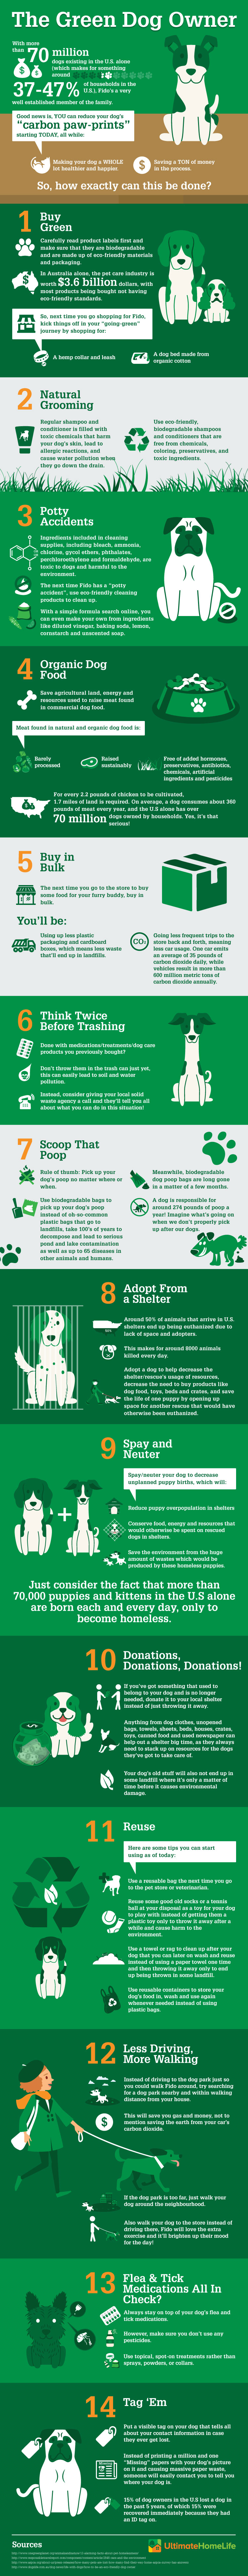 infographic about going green with your dog